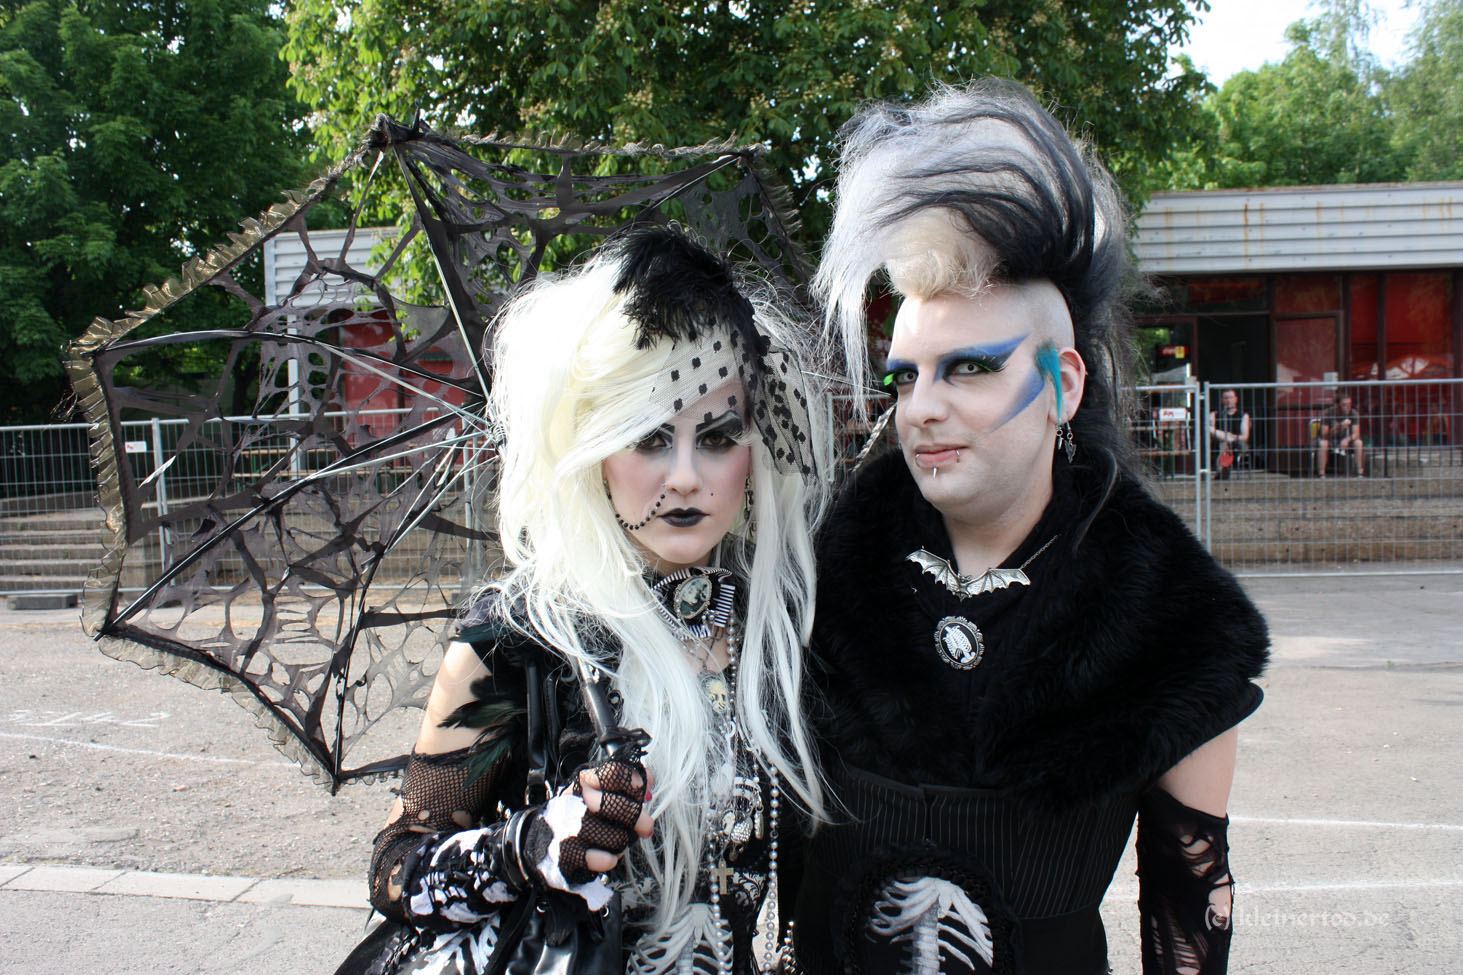 goth subculture The subculture circus wasn't always well, a circus in fact, it started out as a small, riverside storefront in northeast florida, first selling jewelry and then expanding to provide alternative, steampunk, pinup, and rockabilly styles.